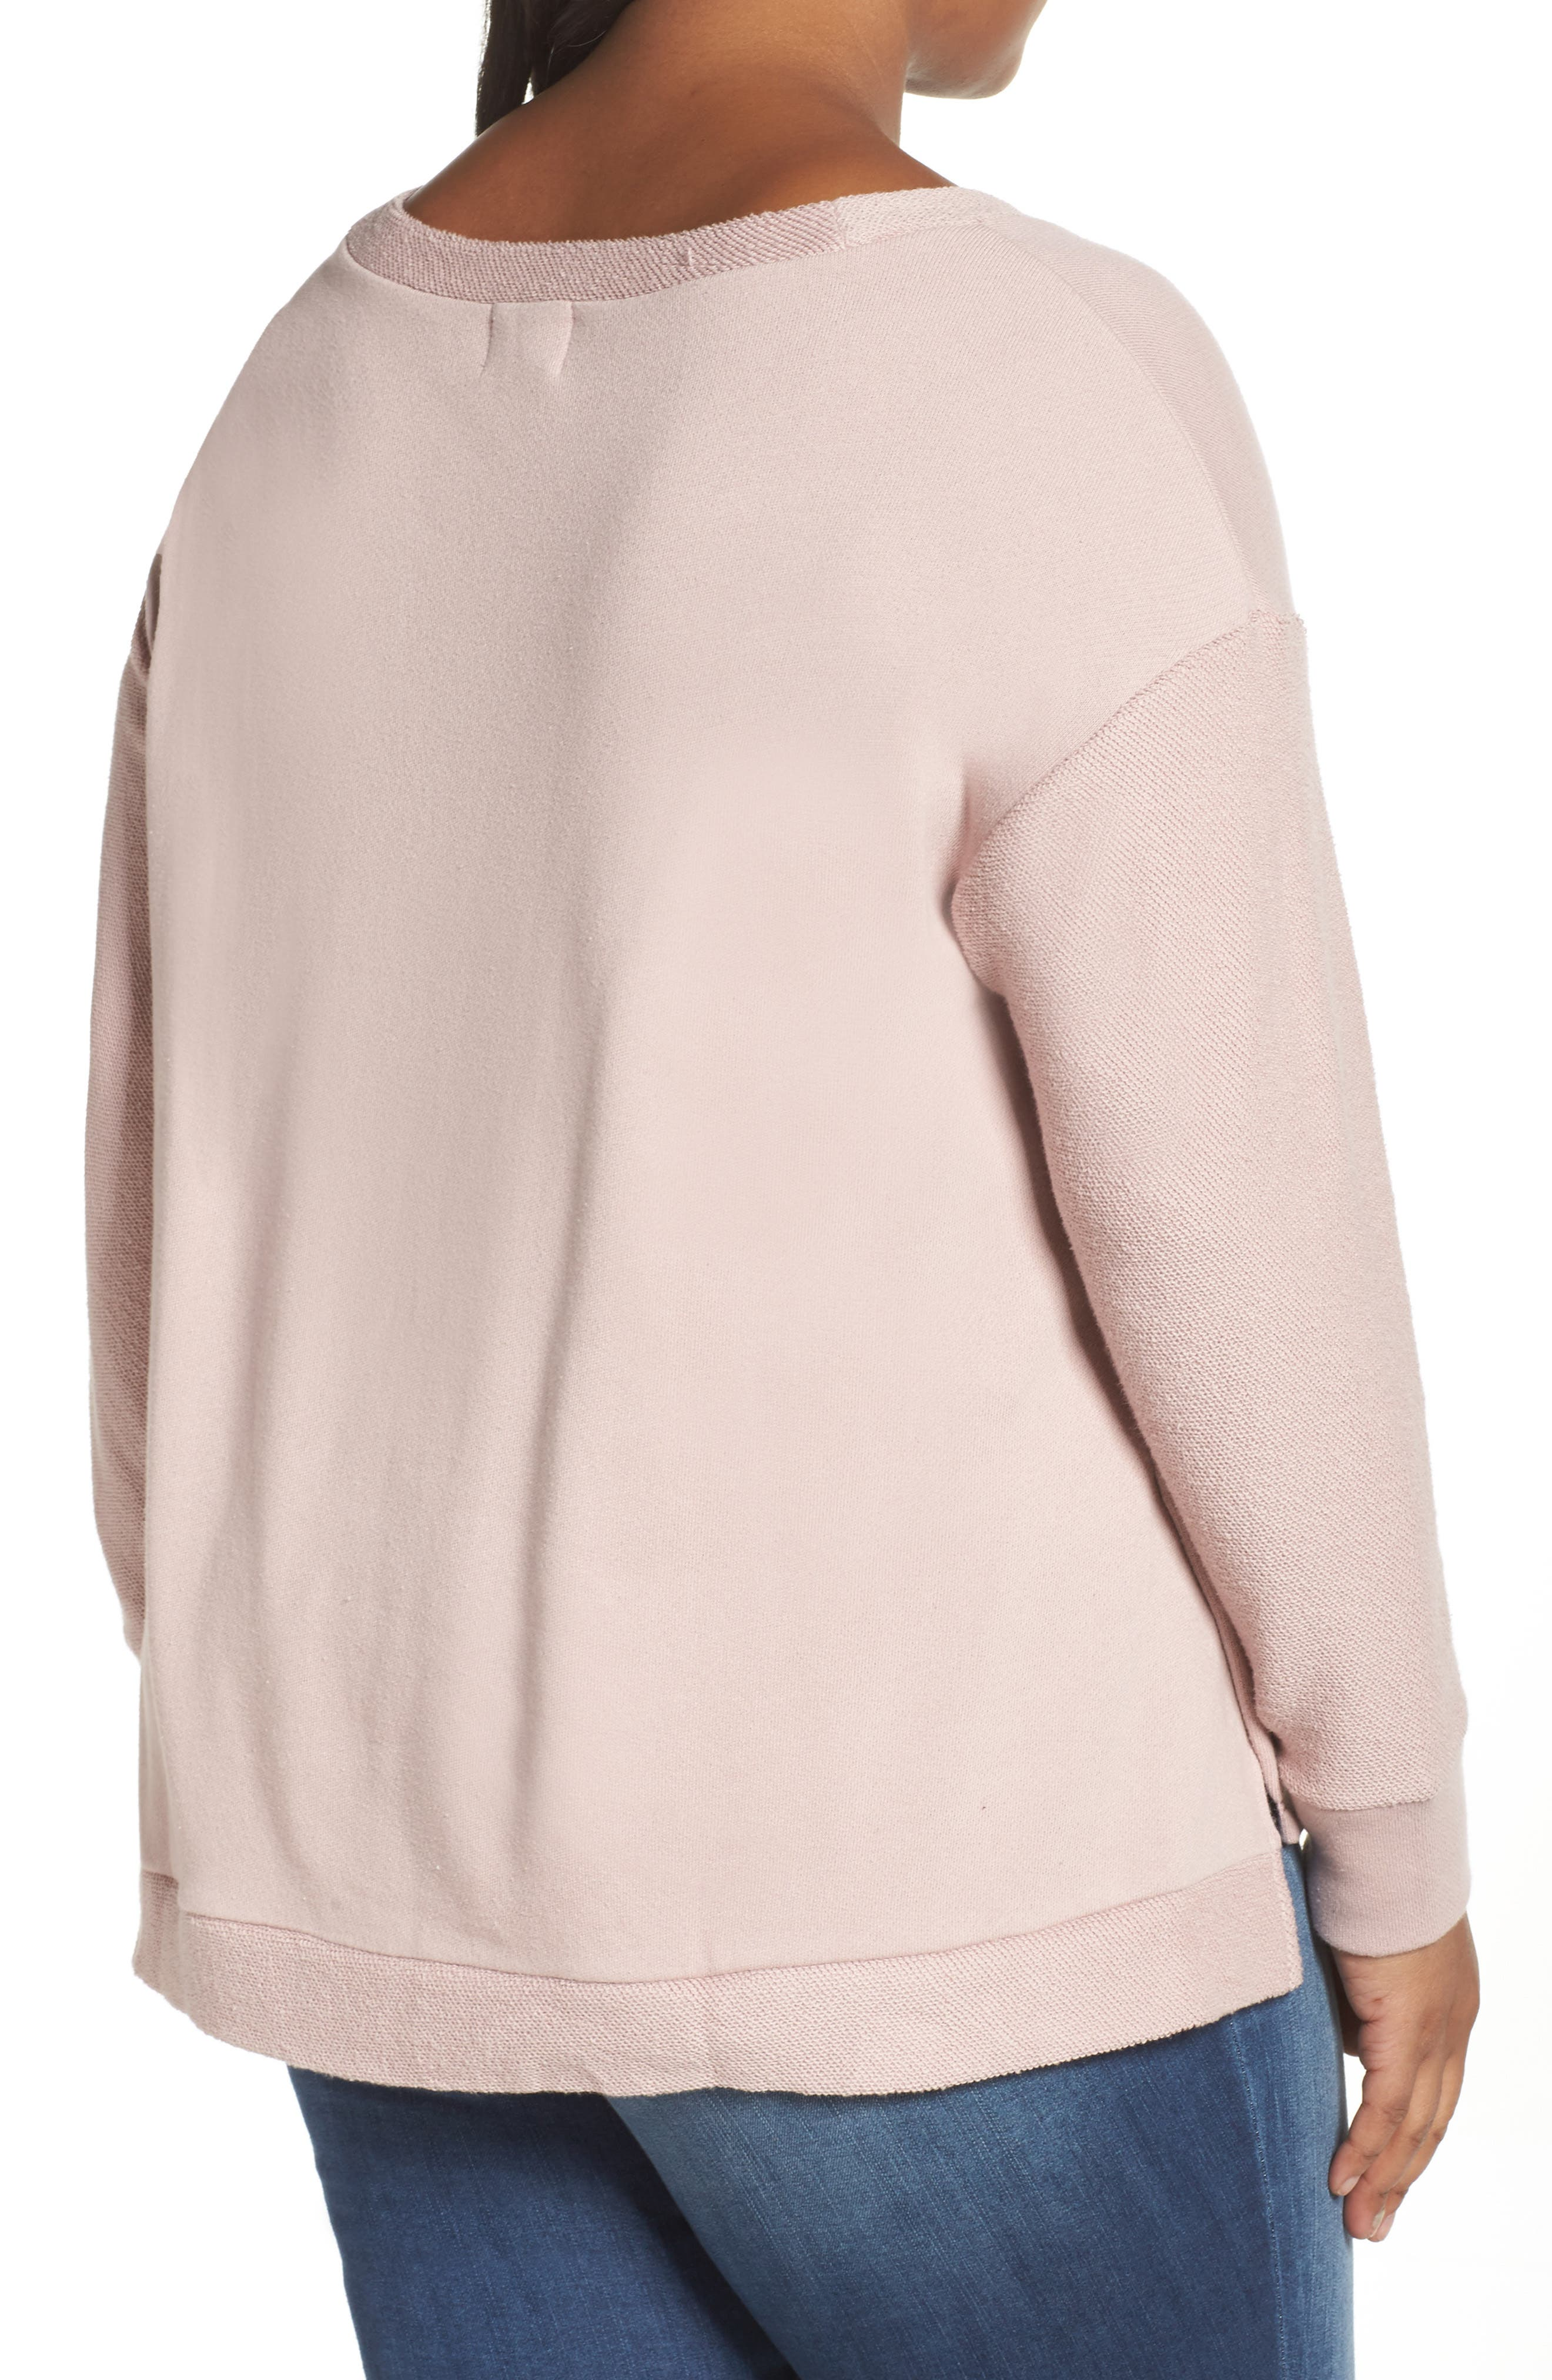 Relaxed Sweatshirt,                             Alternate thumbnail 2, color,                             Pink Adobe